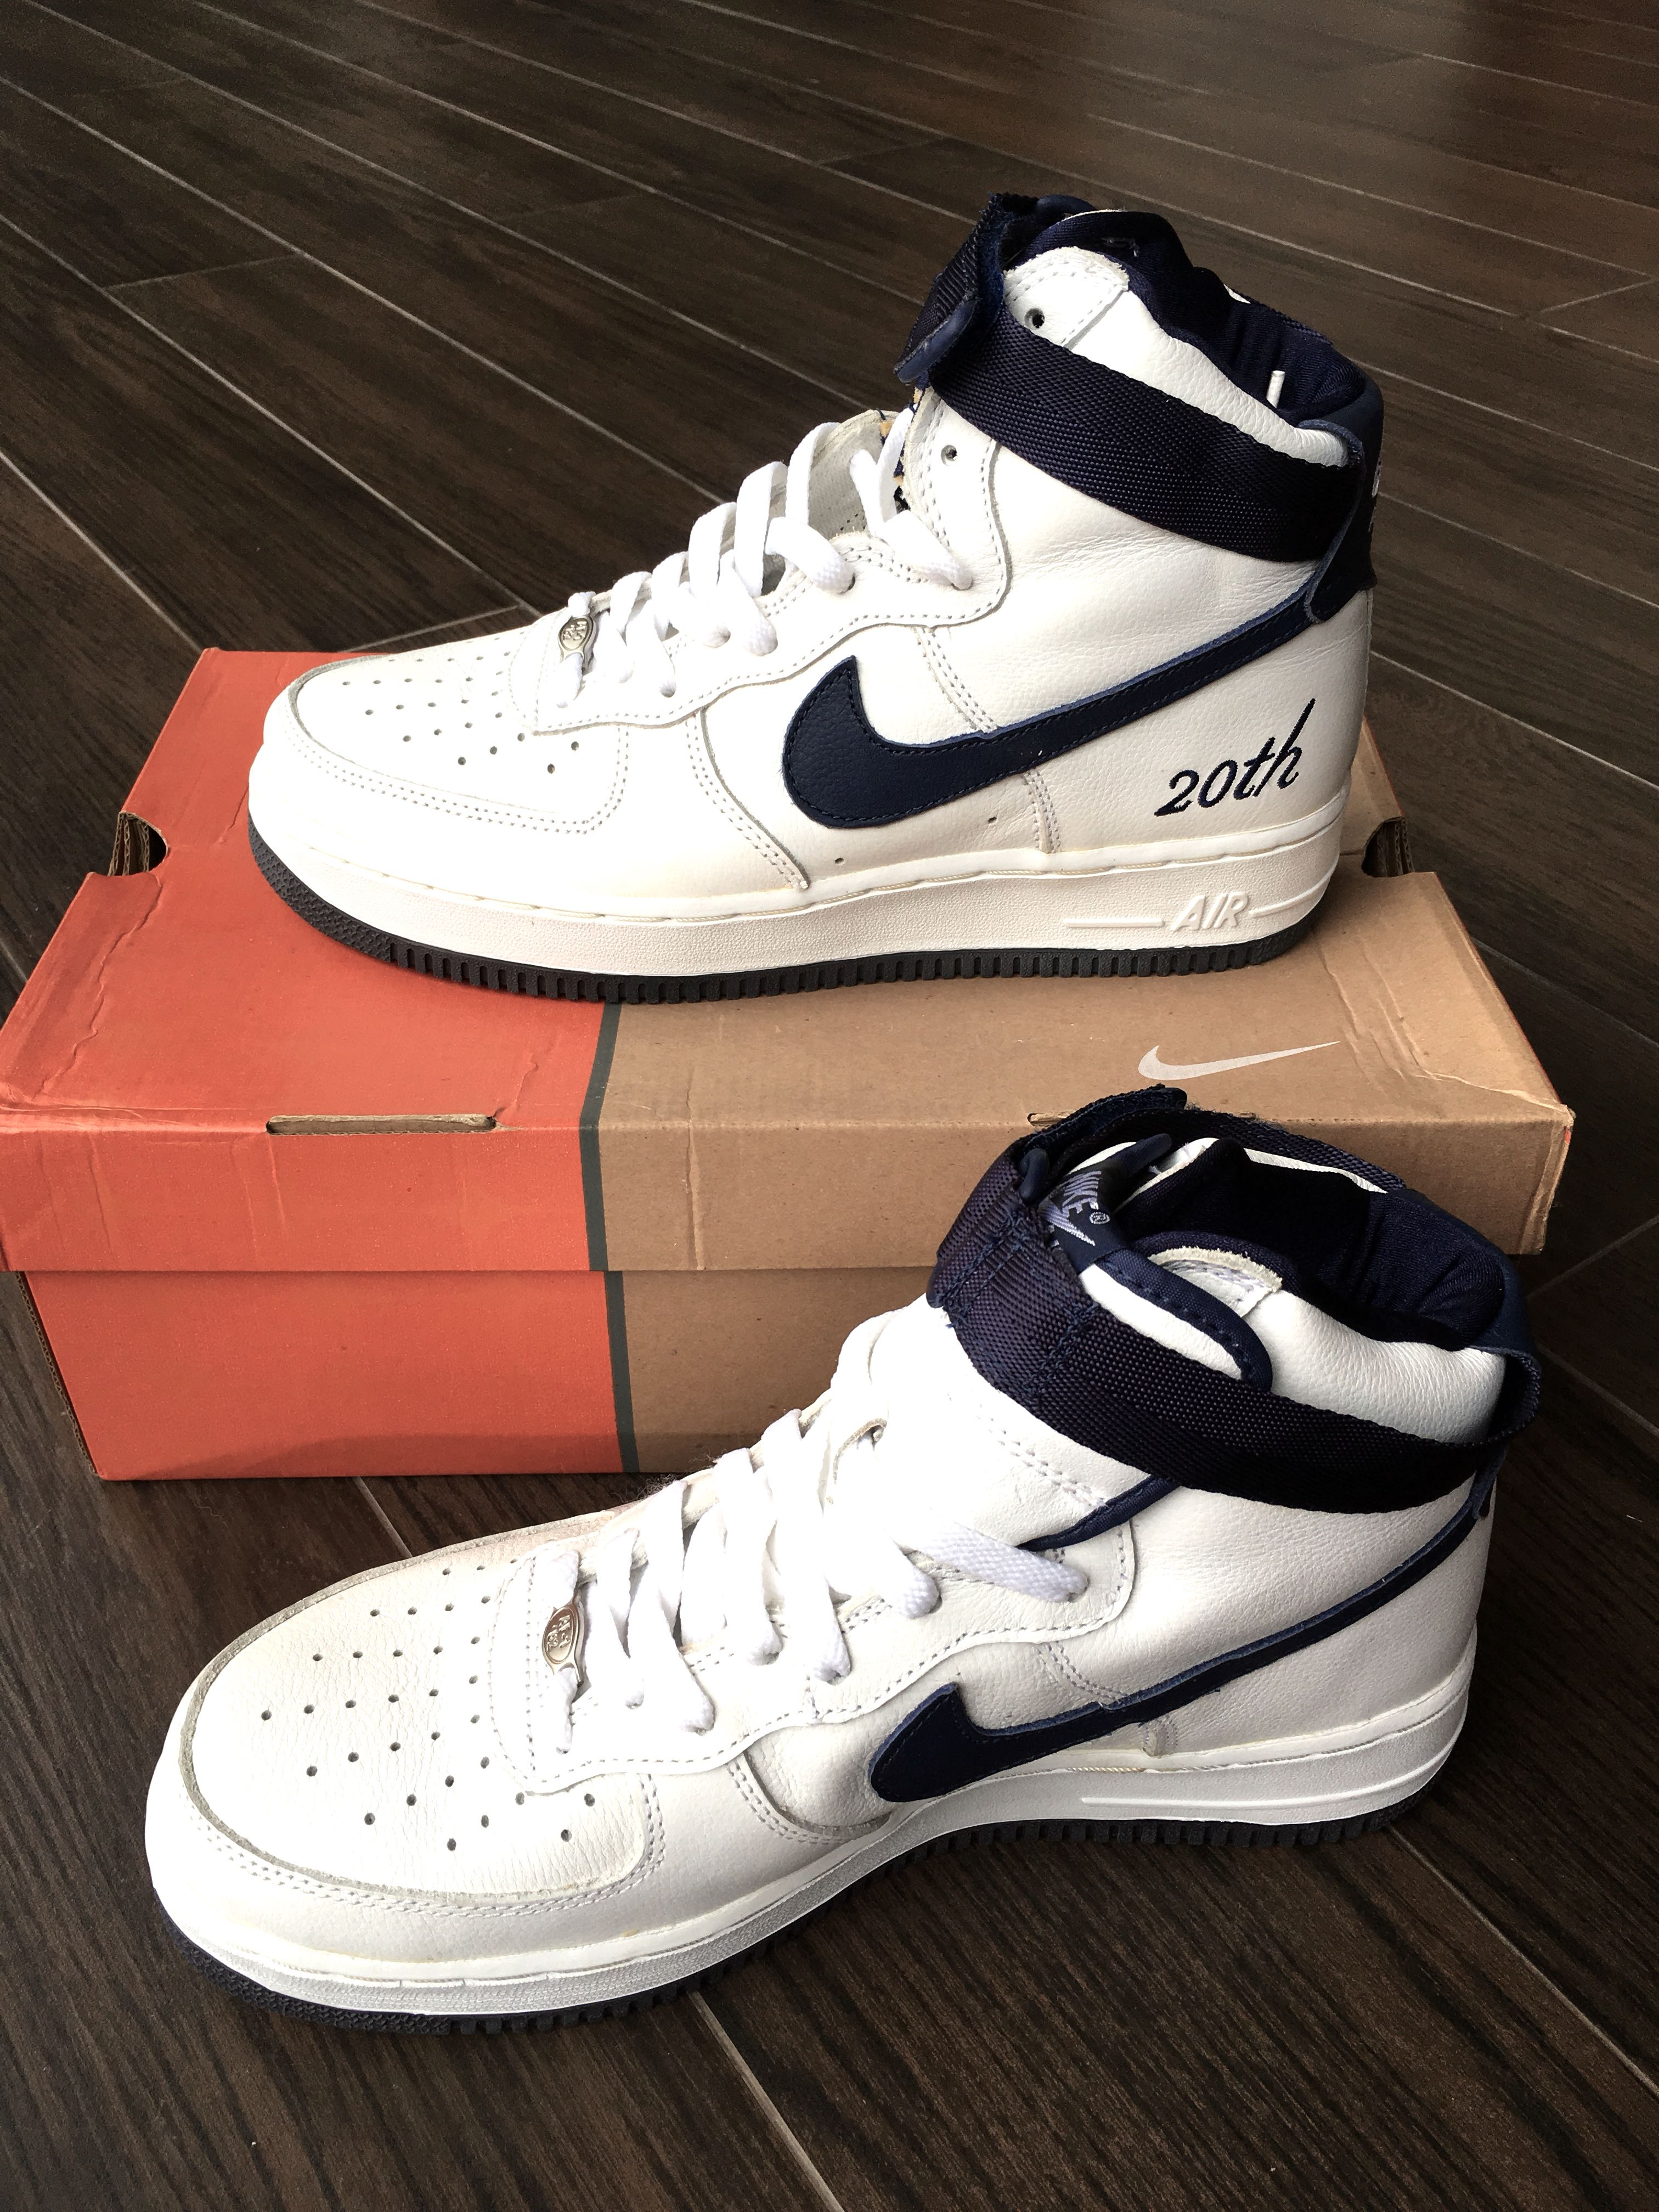 new arrivals e7bba 134f7 US 9.5) Nike Air Force 1 high limited edition 20th anniversary ...